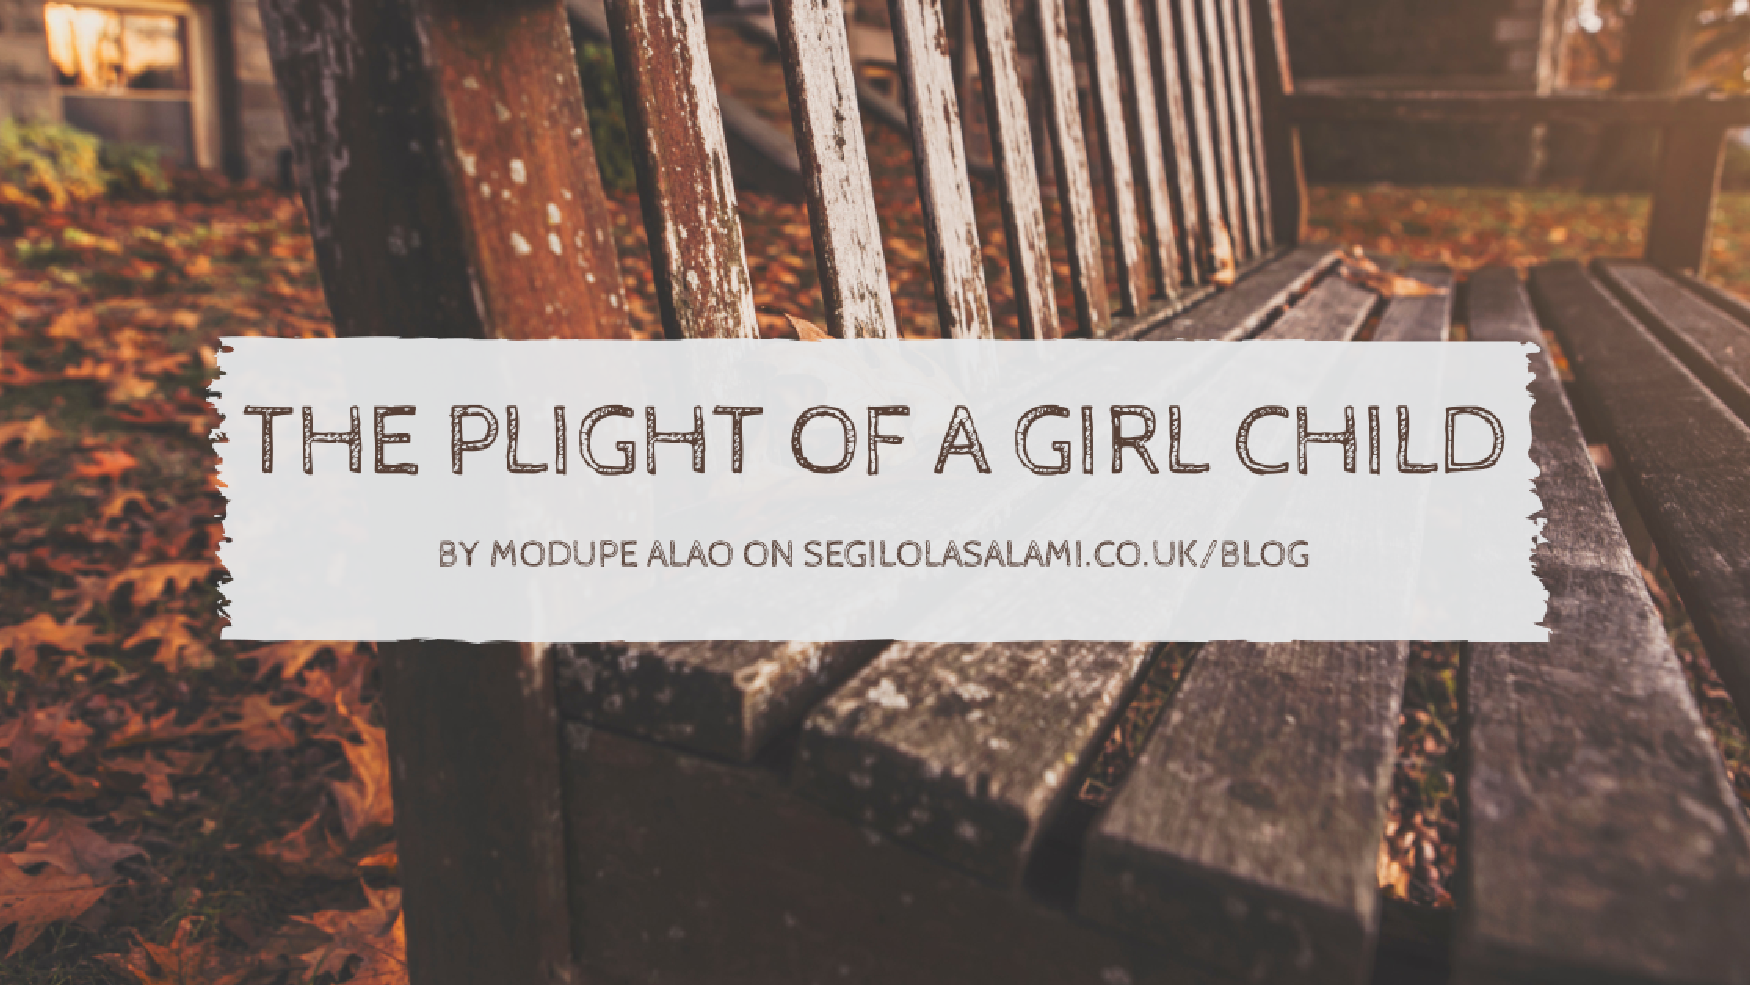 the plight of a girl child in a developing country by modupe alao on segilola salami blog